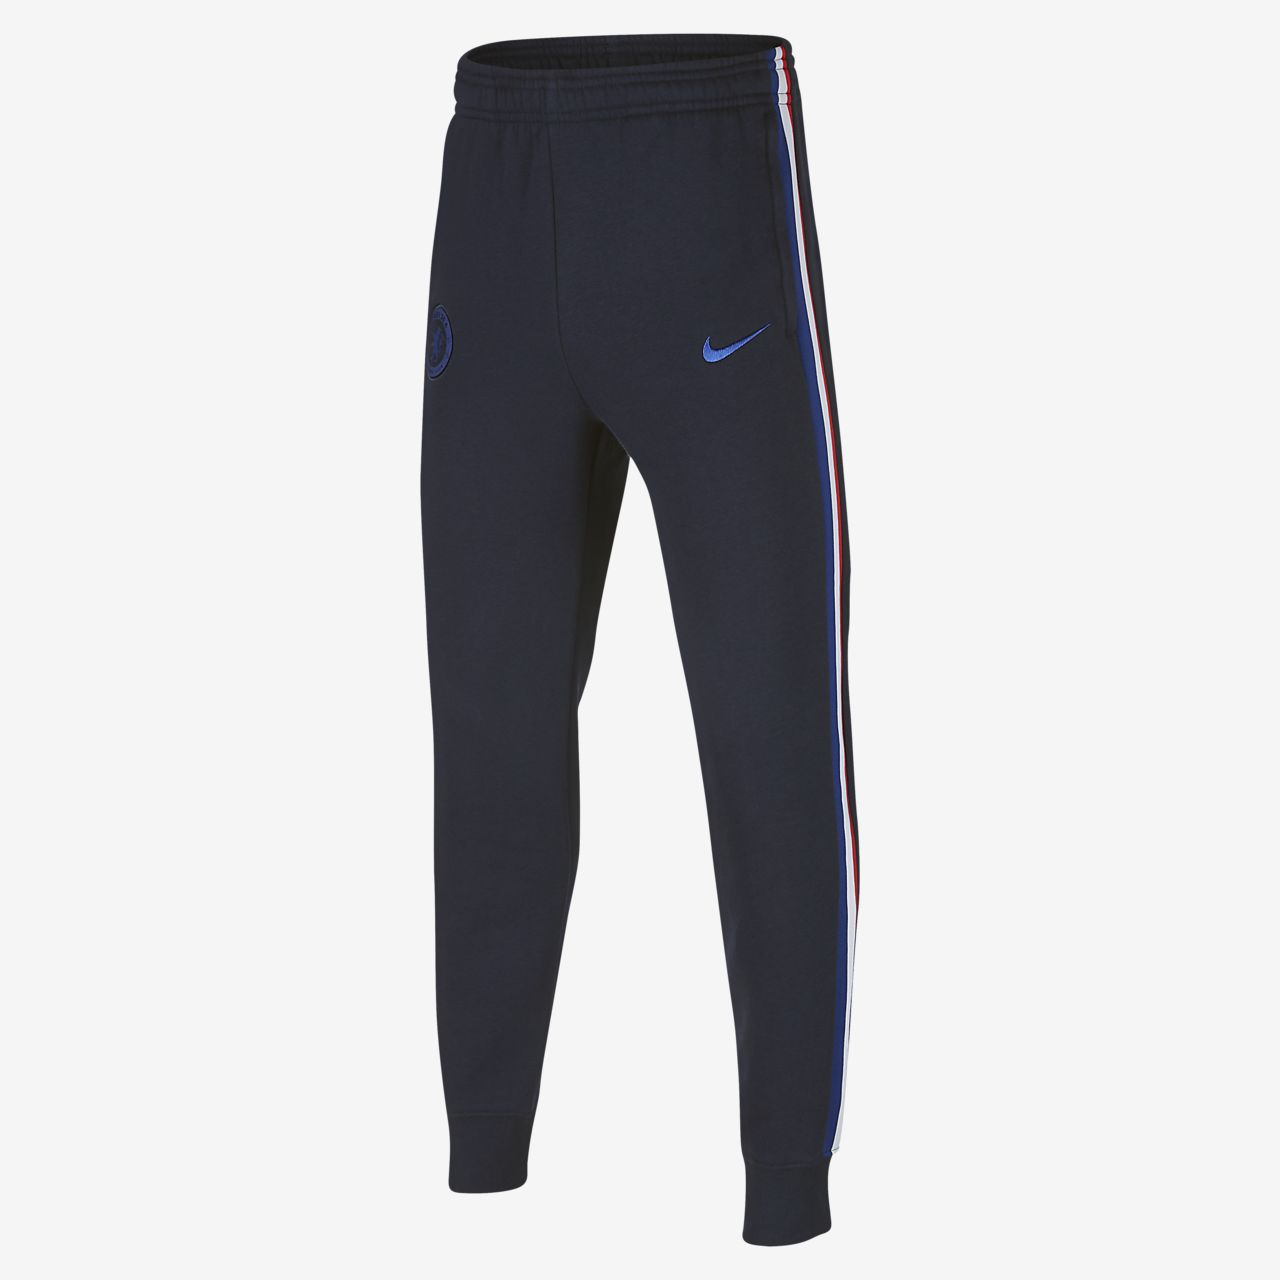 Chelsea FC Older Kids' Fleece Pants